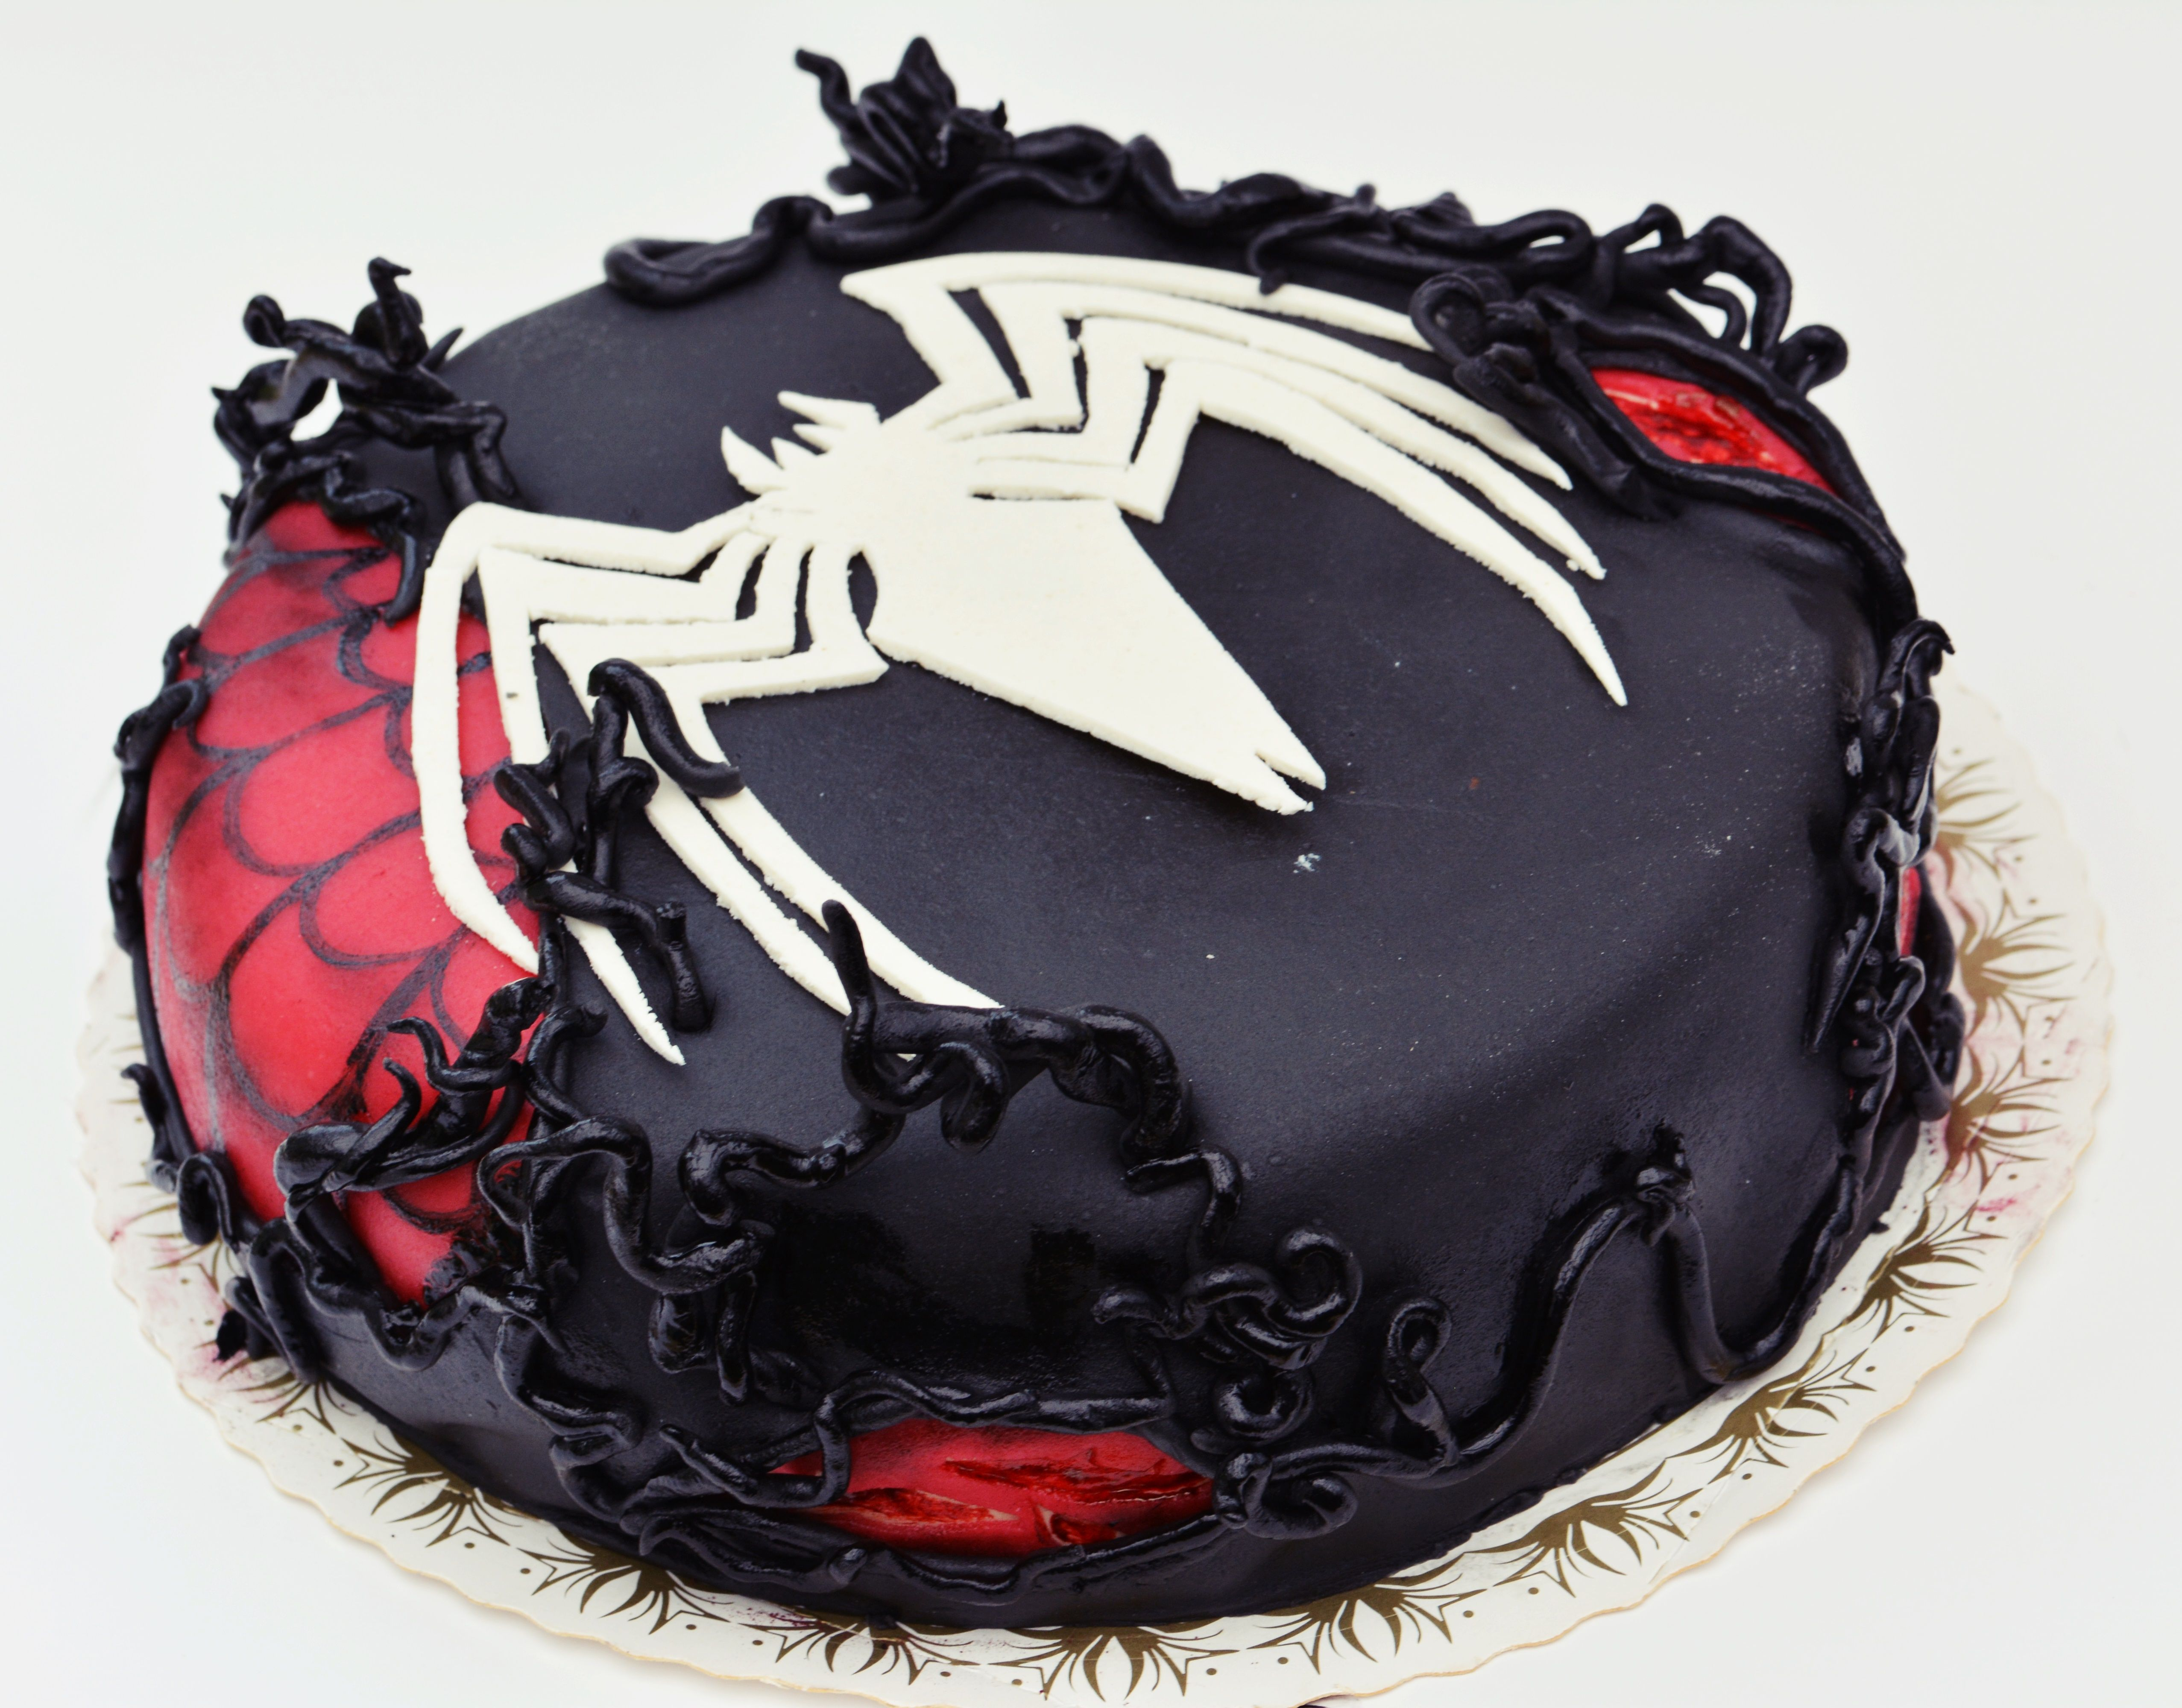 Black spiderman cakes - photo#42